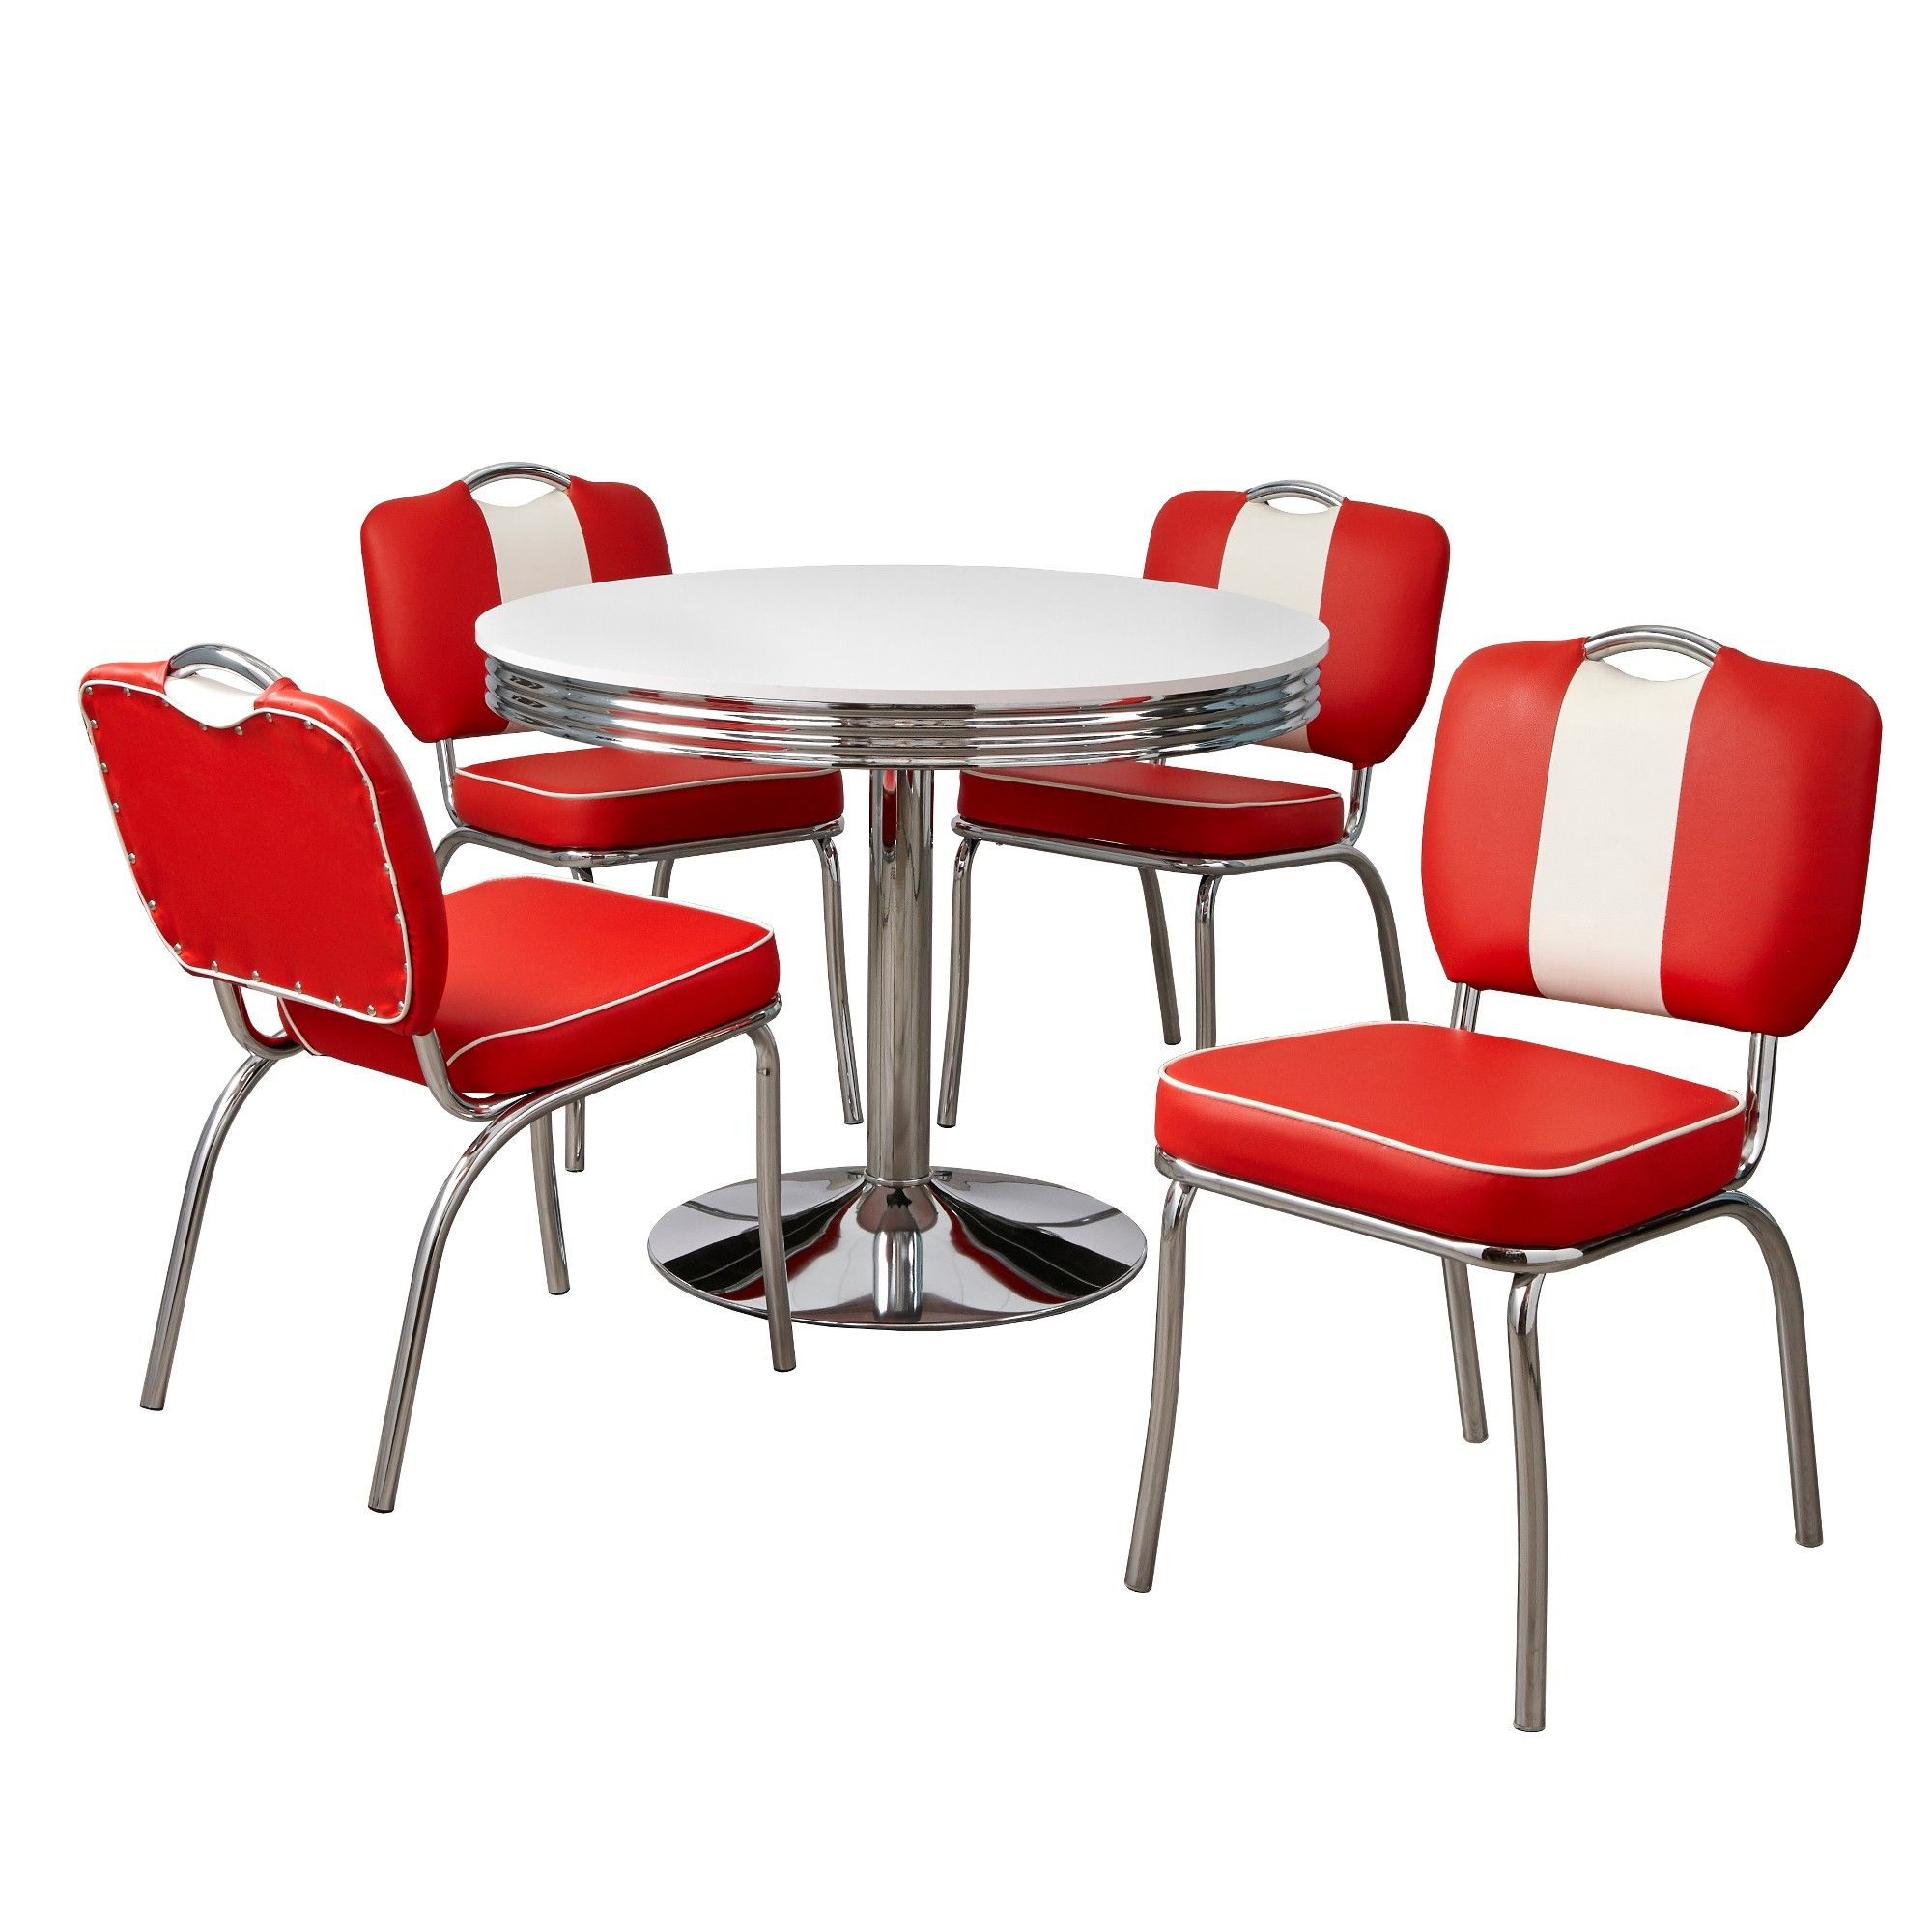 5pc Raleigh Retro Dining Set White Red Buylateral 5 Piece